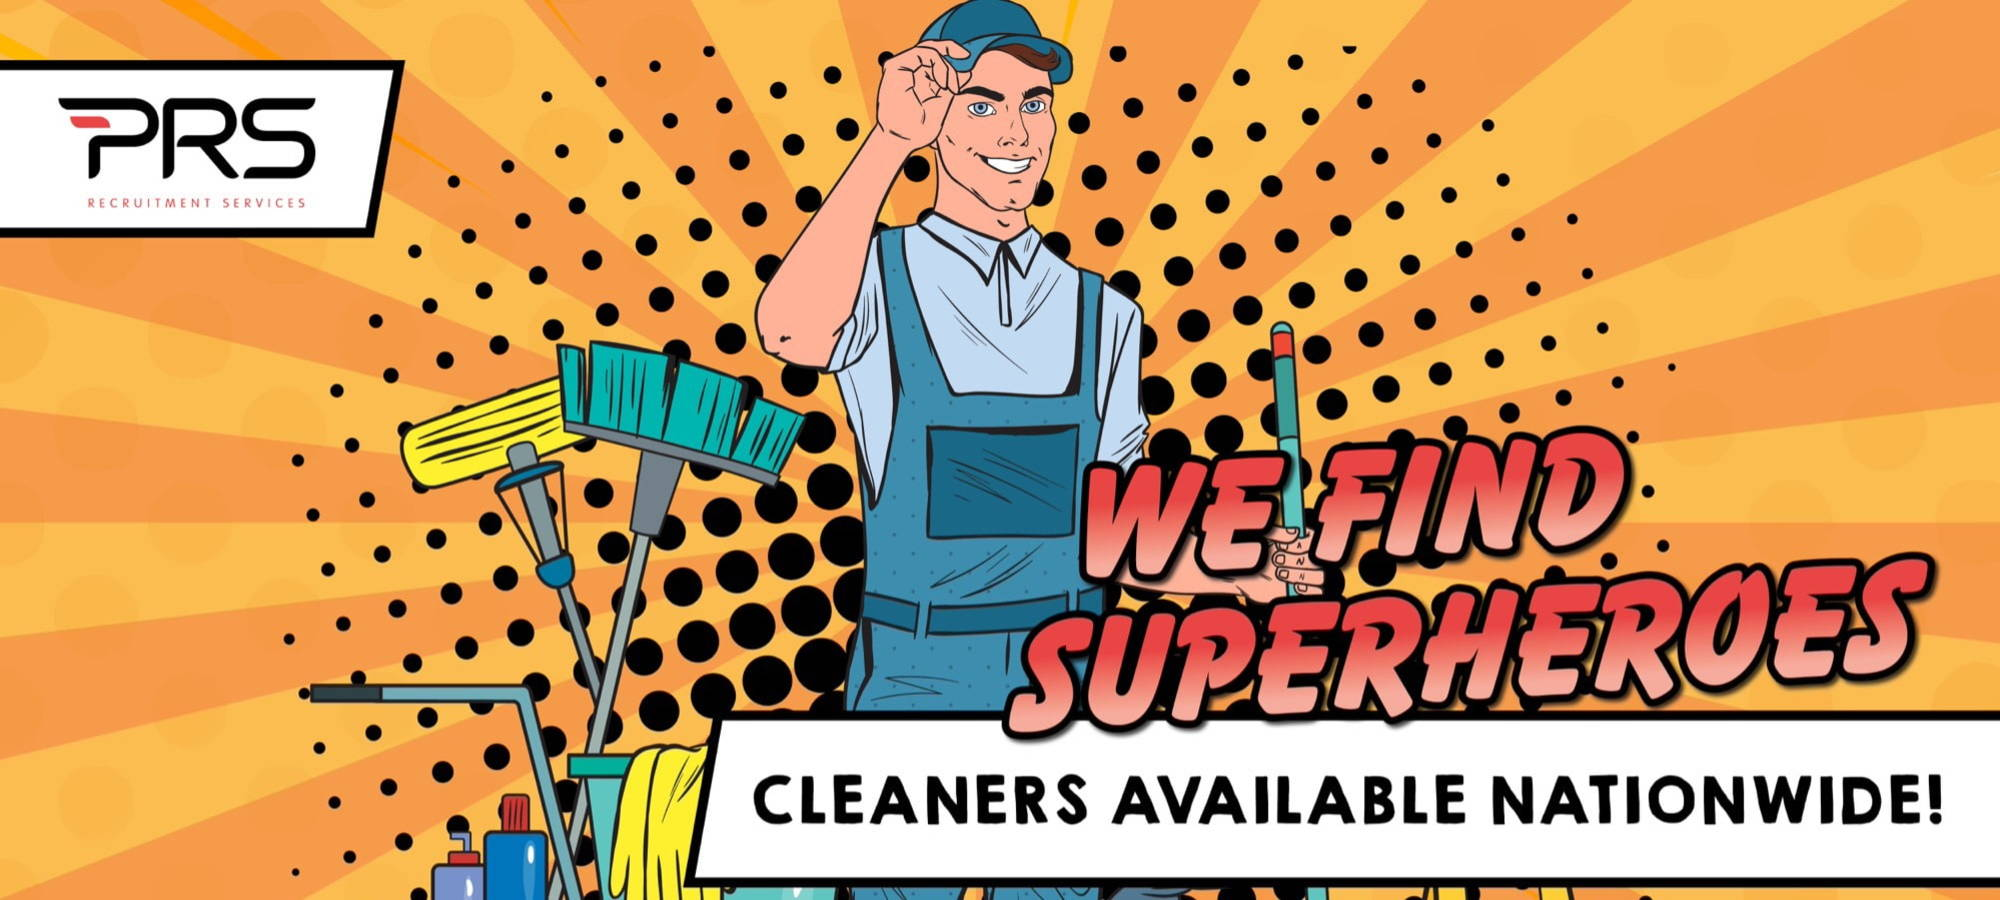 Cleaners Available Nationwide Banner Image